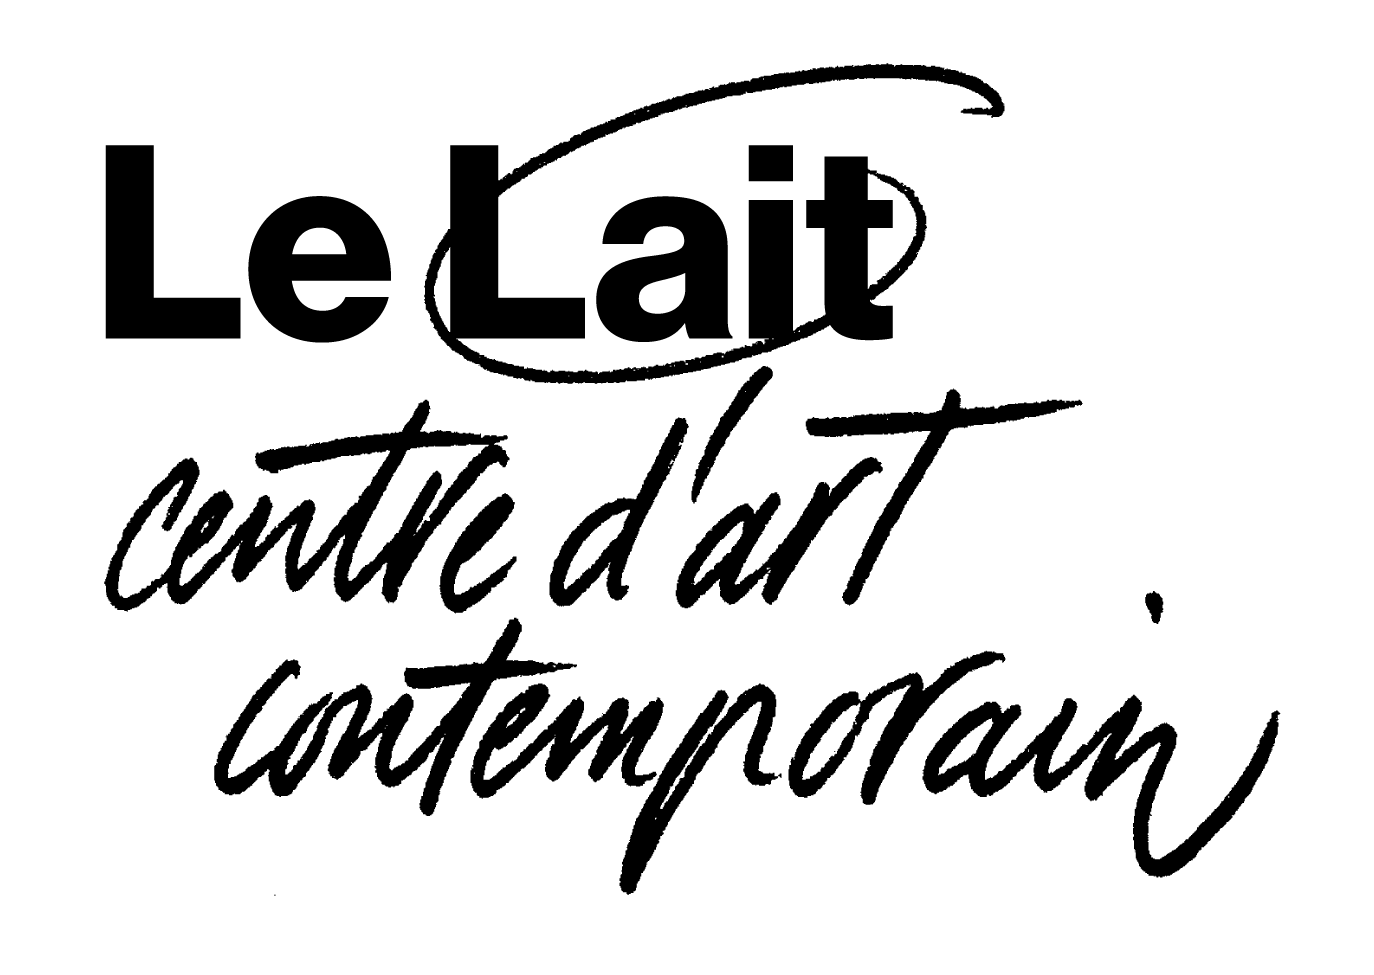 Centre d'art Le Lait